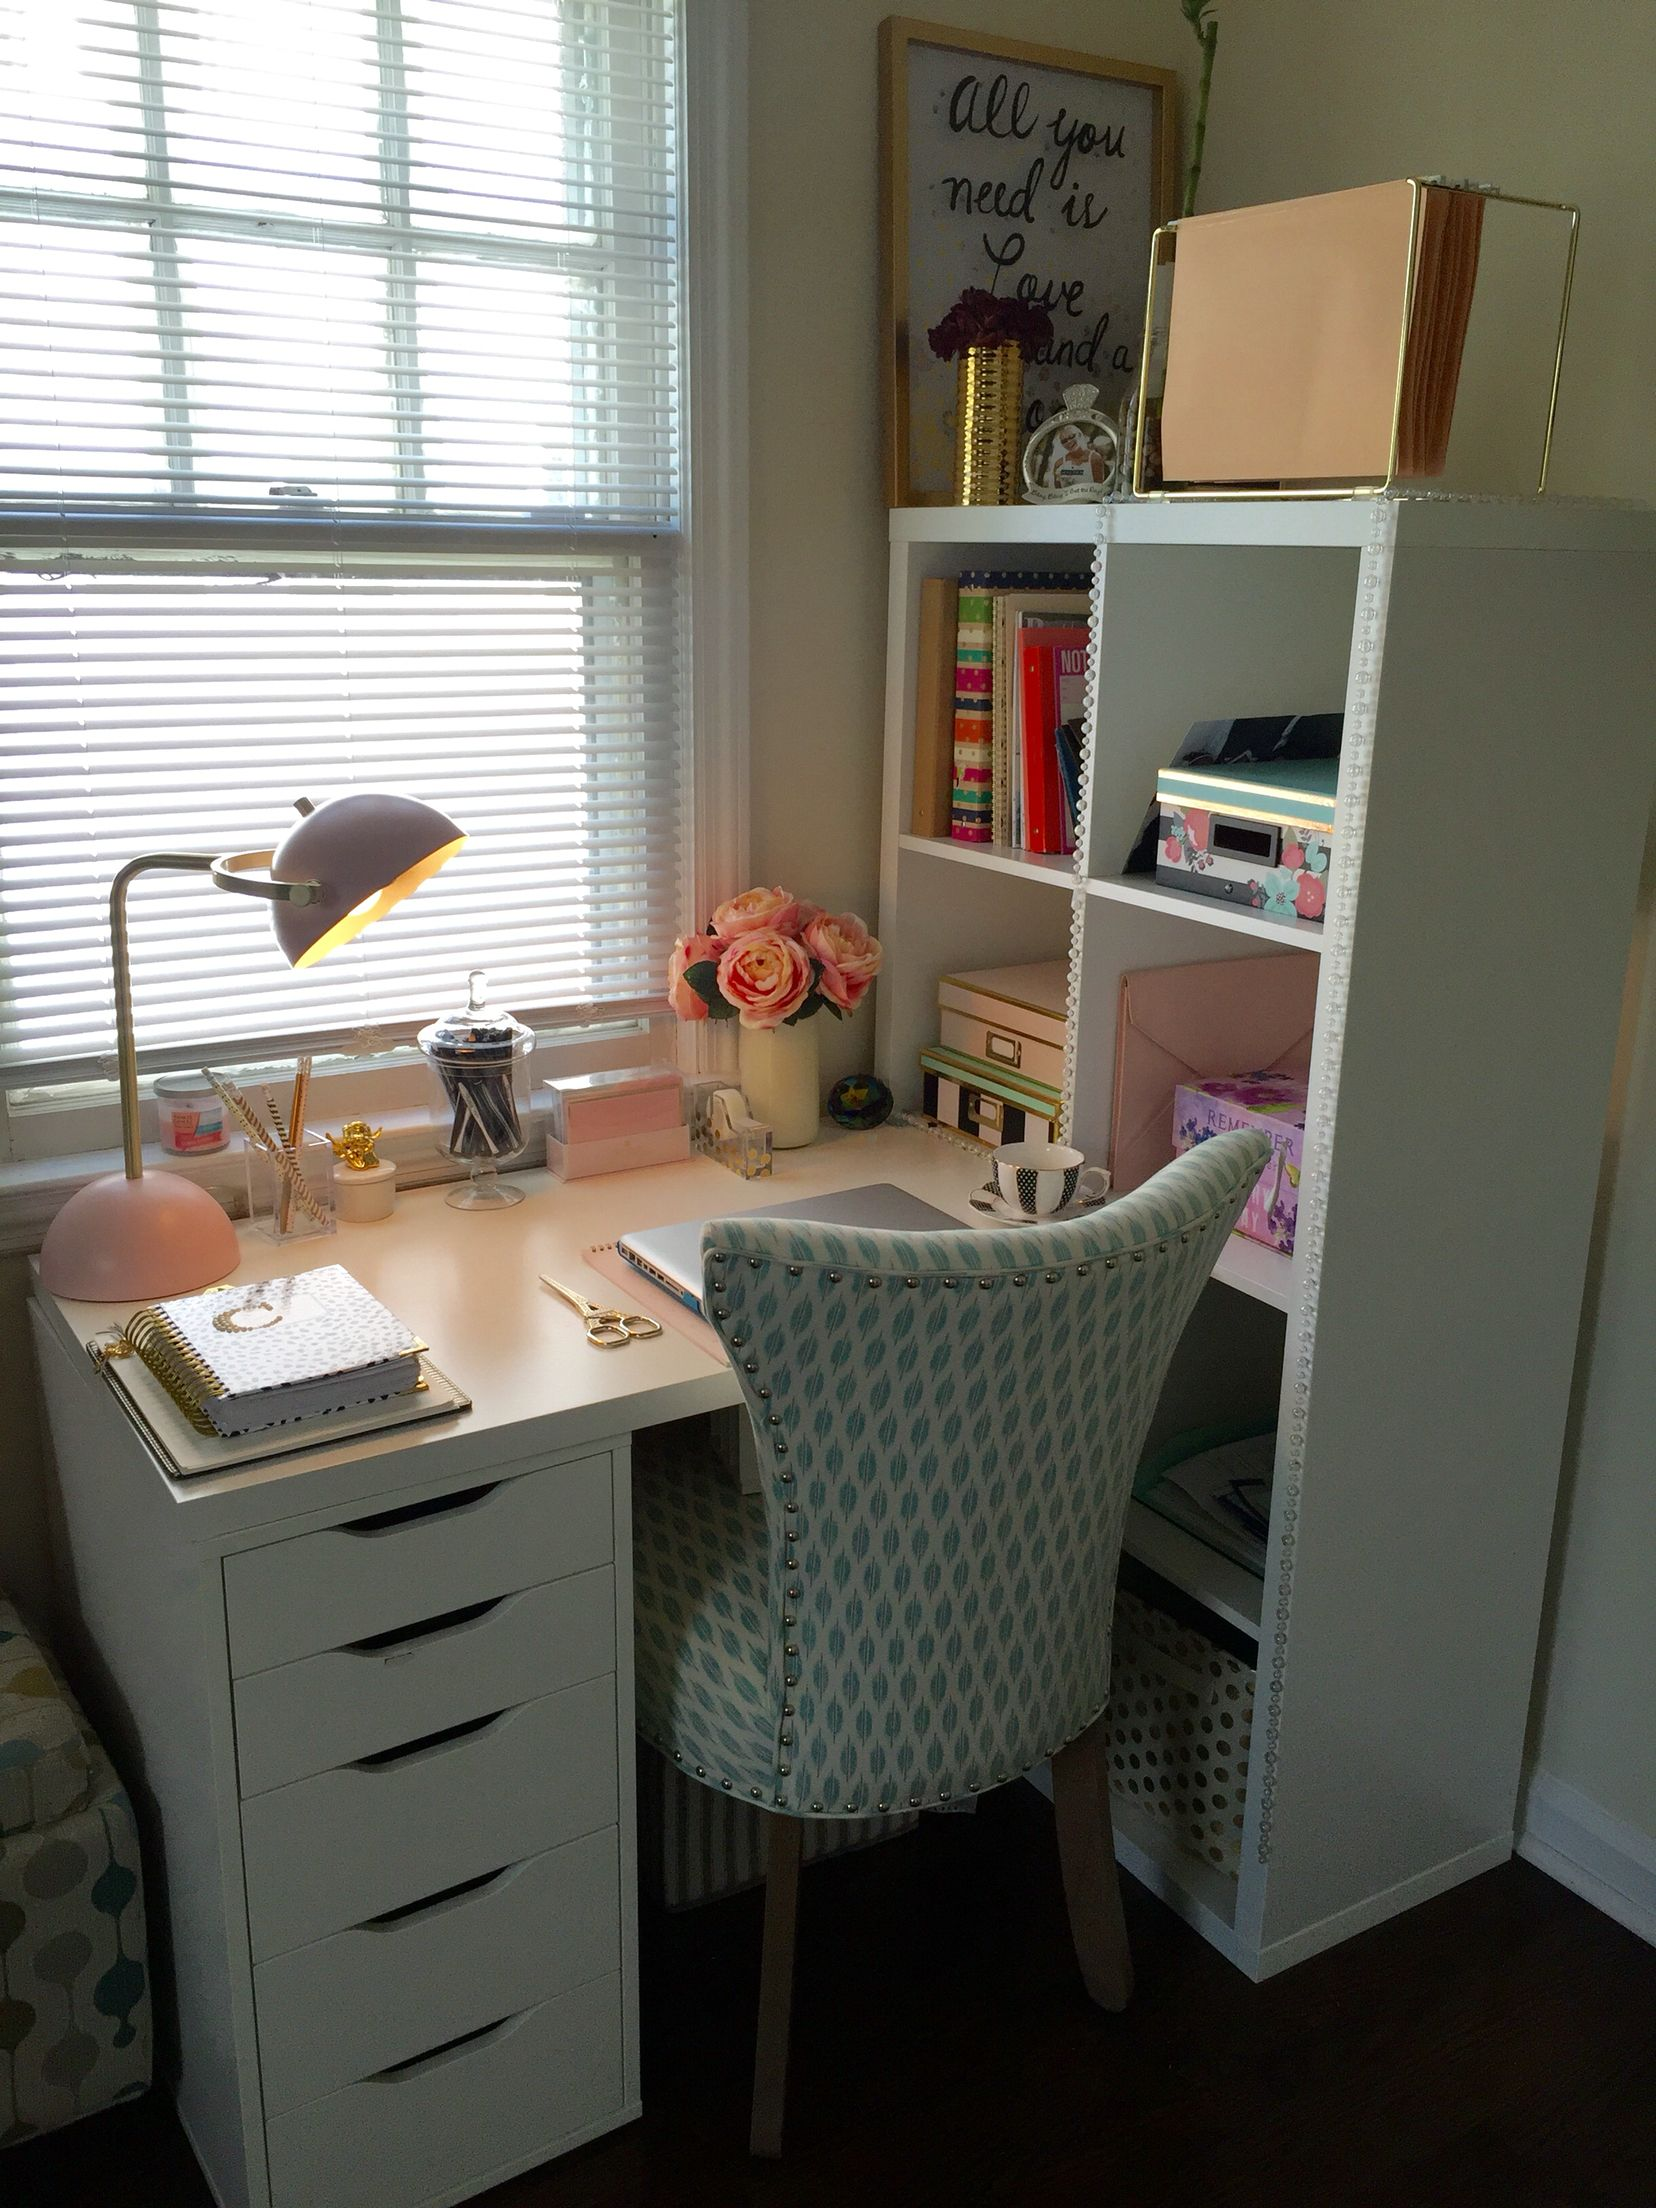 Ikea Home Office Youtube Home Office Day Designer Ikea Hack Home Goods Finds